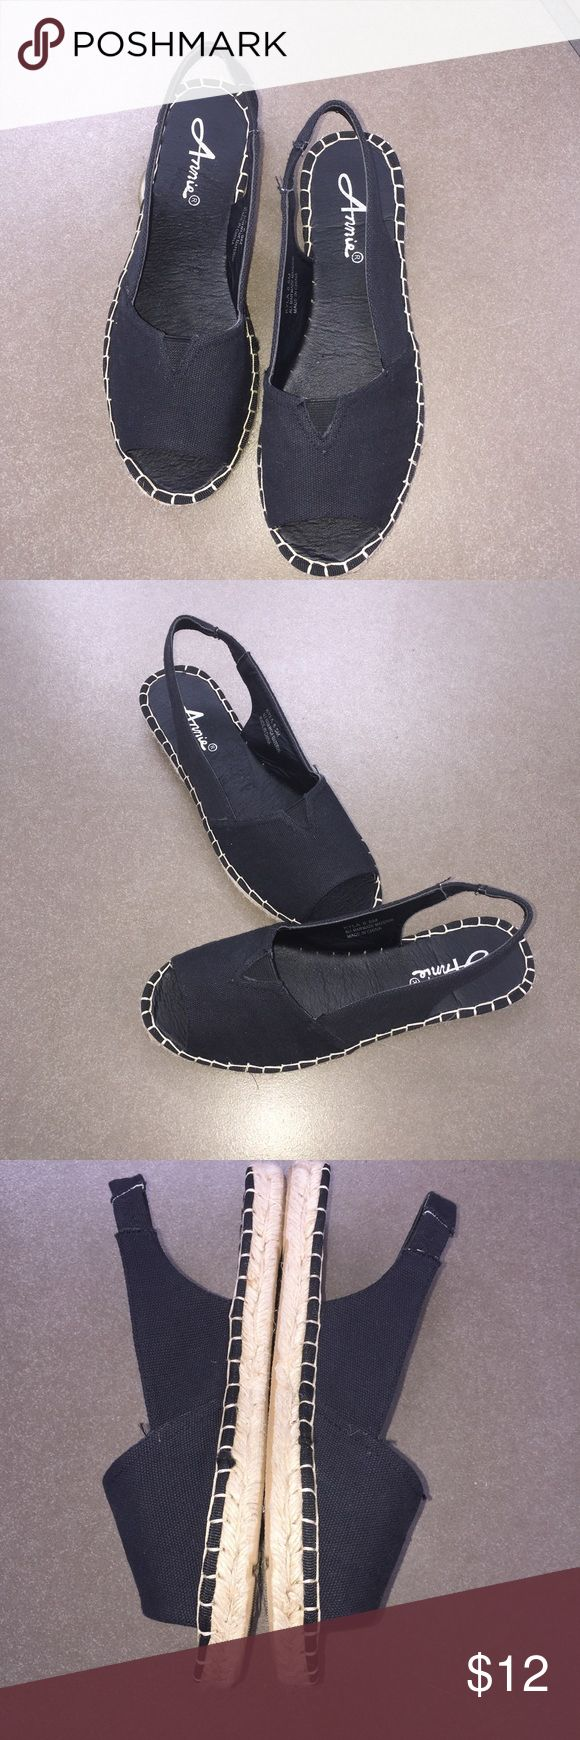 Sweet & comfortable black canvas sling back shoes Black canvas shoes with jute soles. Very comfortable and chic, a must for those warm summer days Kyla by Annie Shoes Sandals